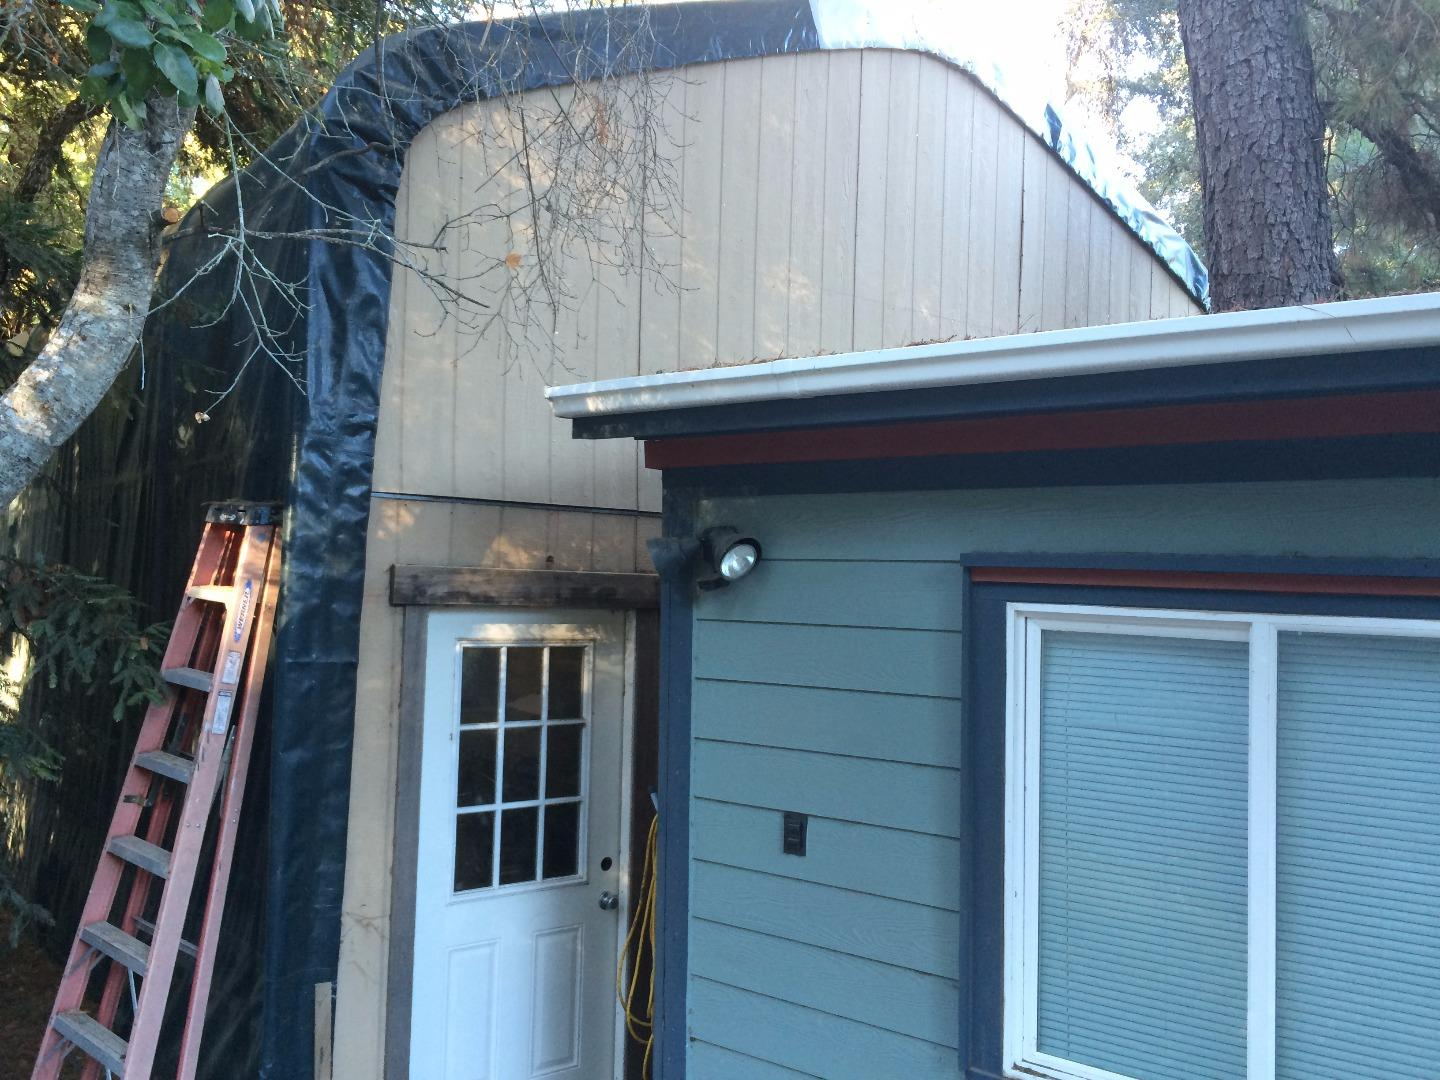 Scotts Valley CA Single Family Home with 3 bedrooms and 2 bathrooms